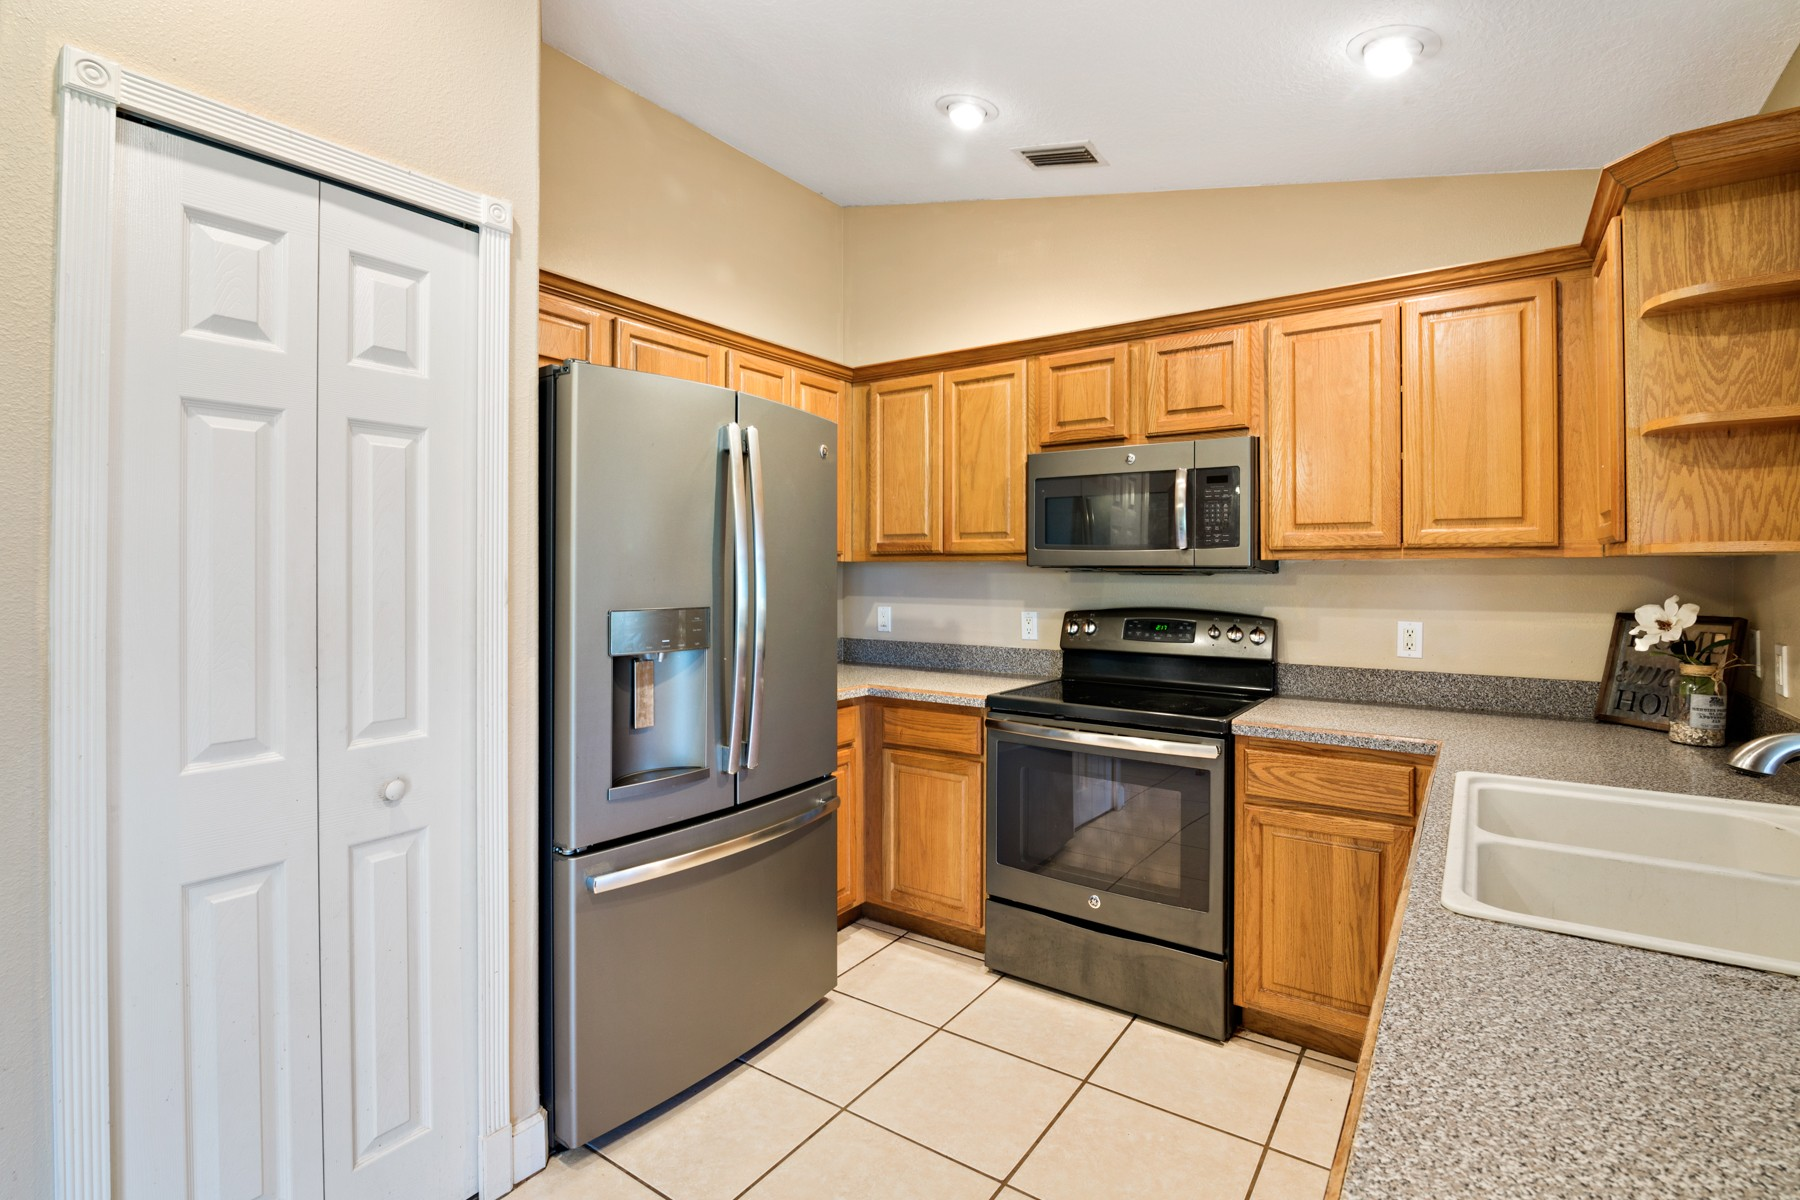 Additional photo for property listing at Live the Florida Dream! 2773 San Filippo Dr SE Palm Bay, Florida 32909 United States